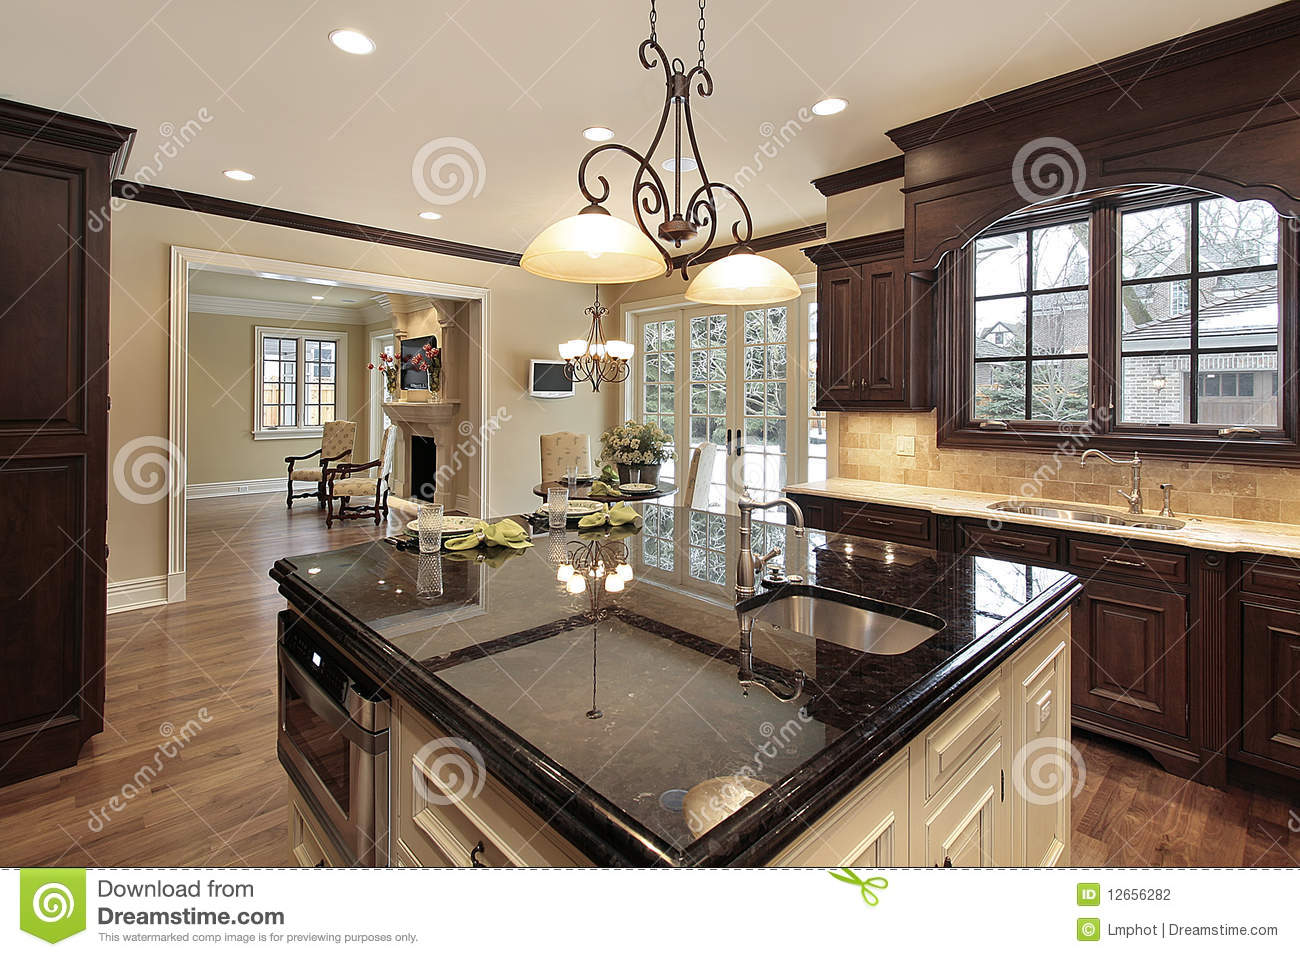 Big W Kitchen Appliances Kitchen With Large Island Stock Photo Image Of Dining